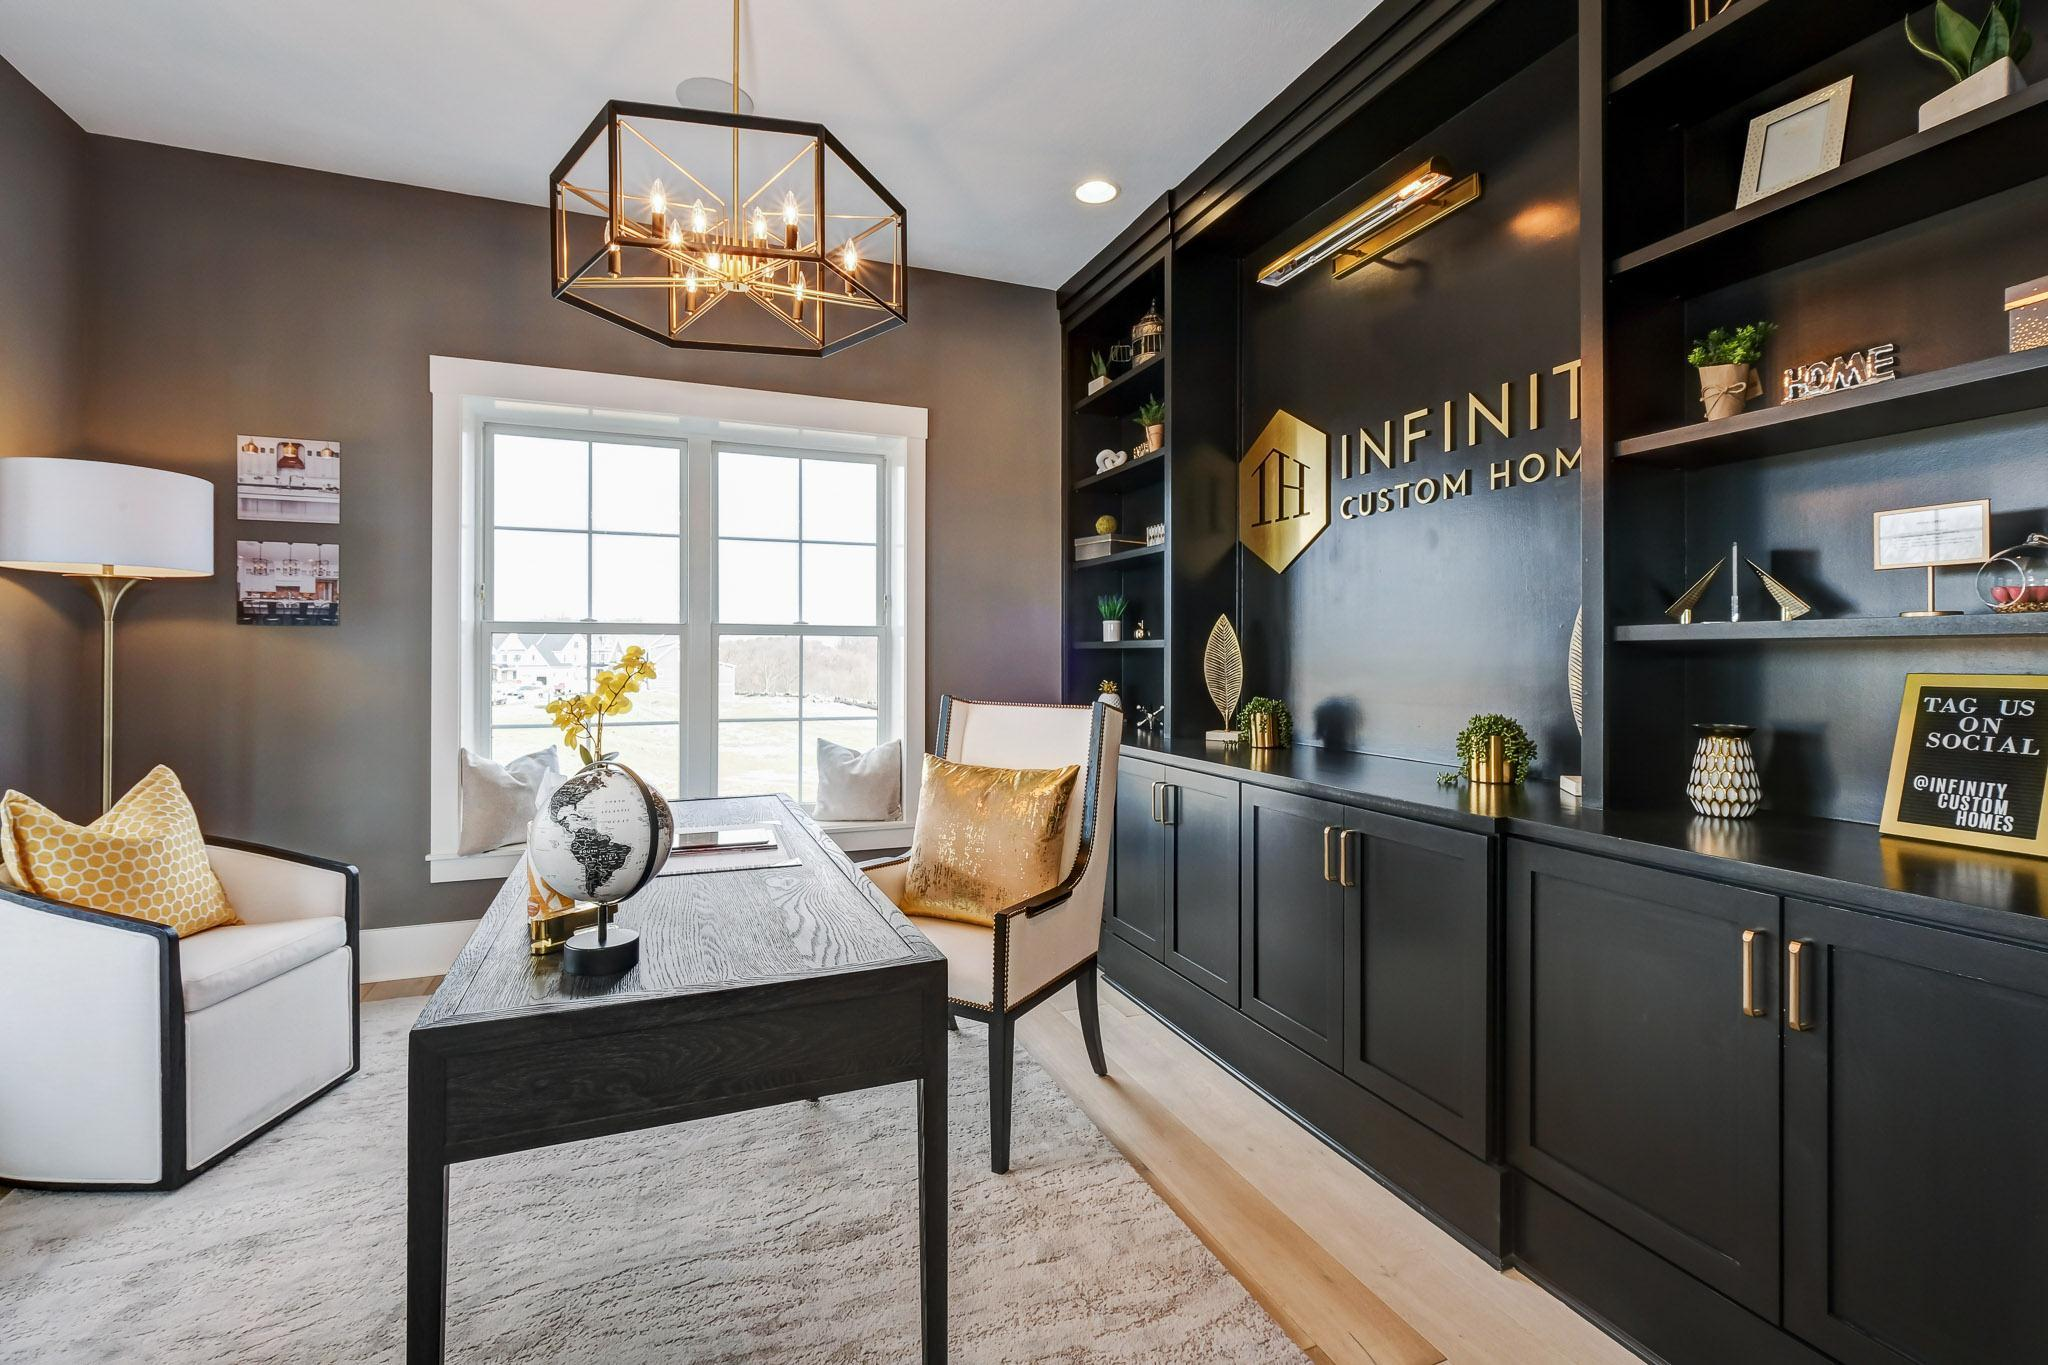 Living Area featured in the Napa By Infinity Custom Homes in Pittsburgh, PA